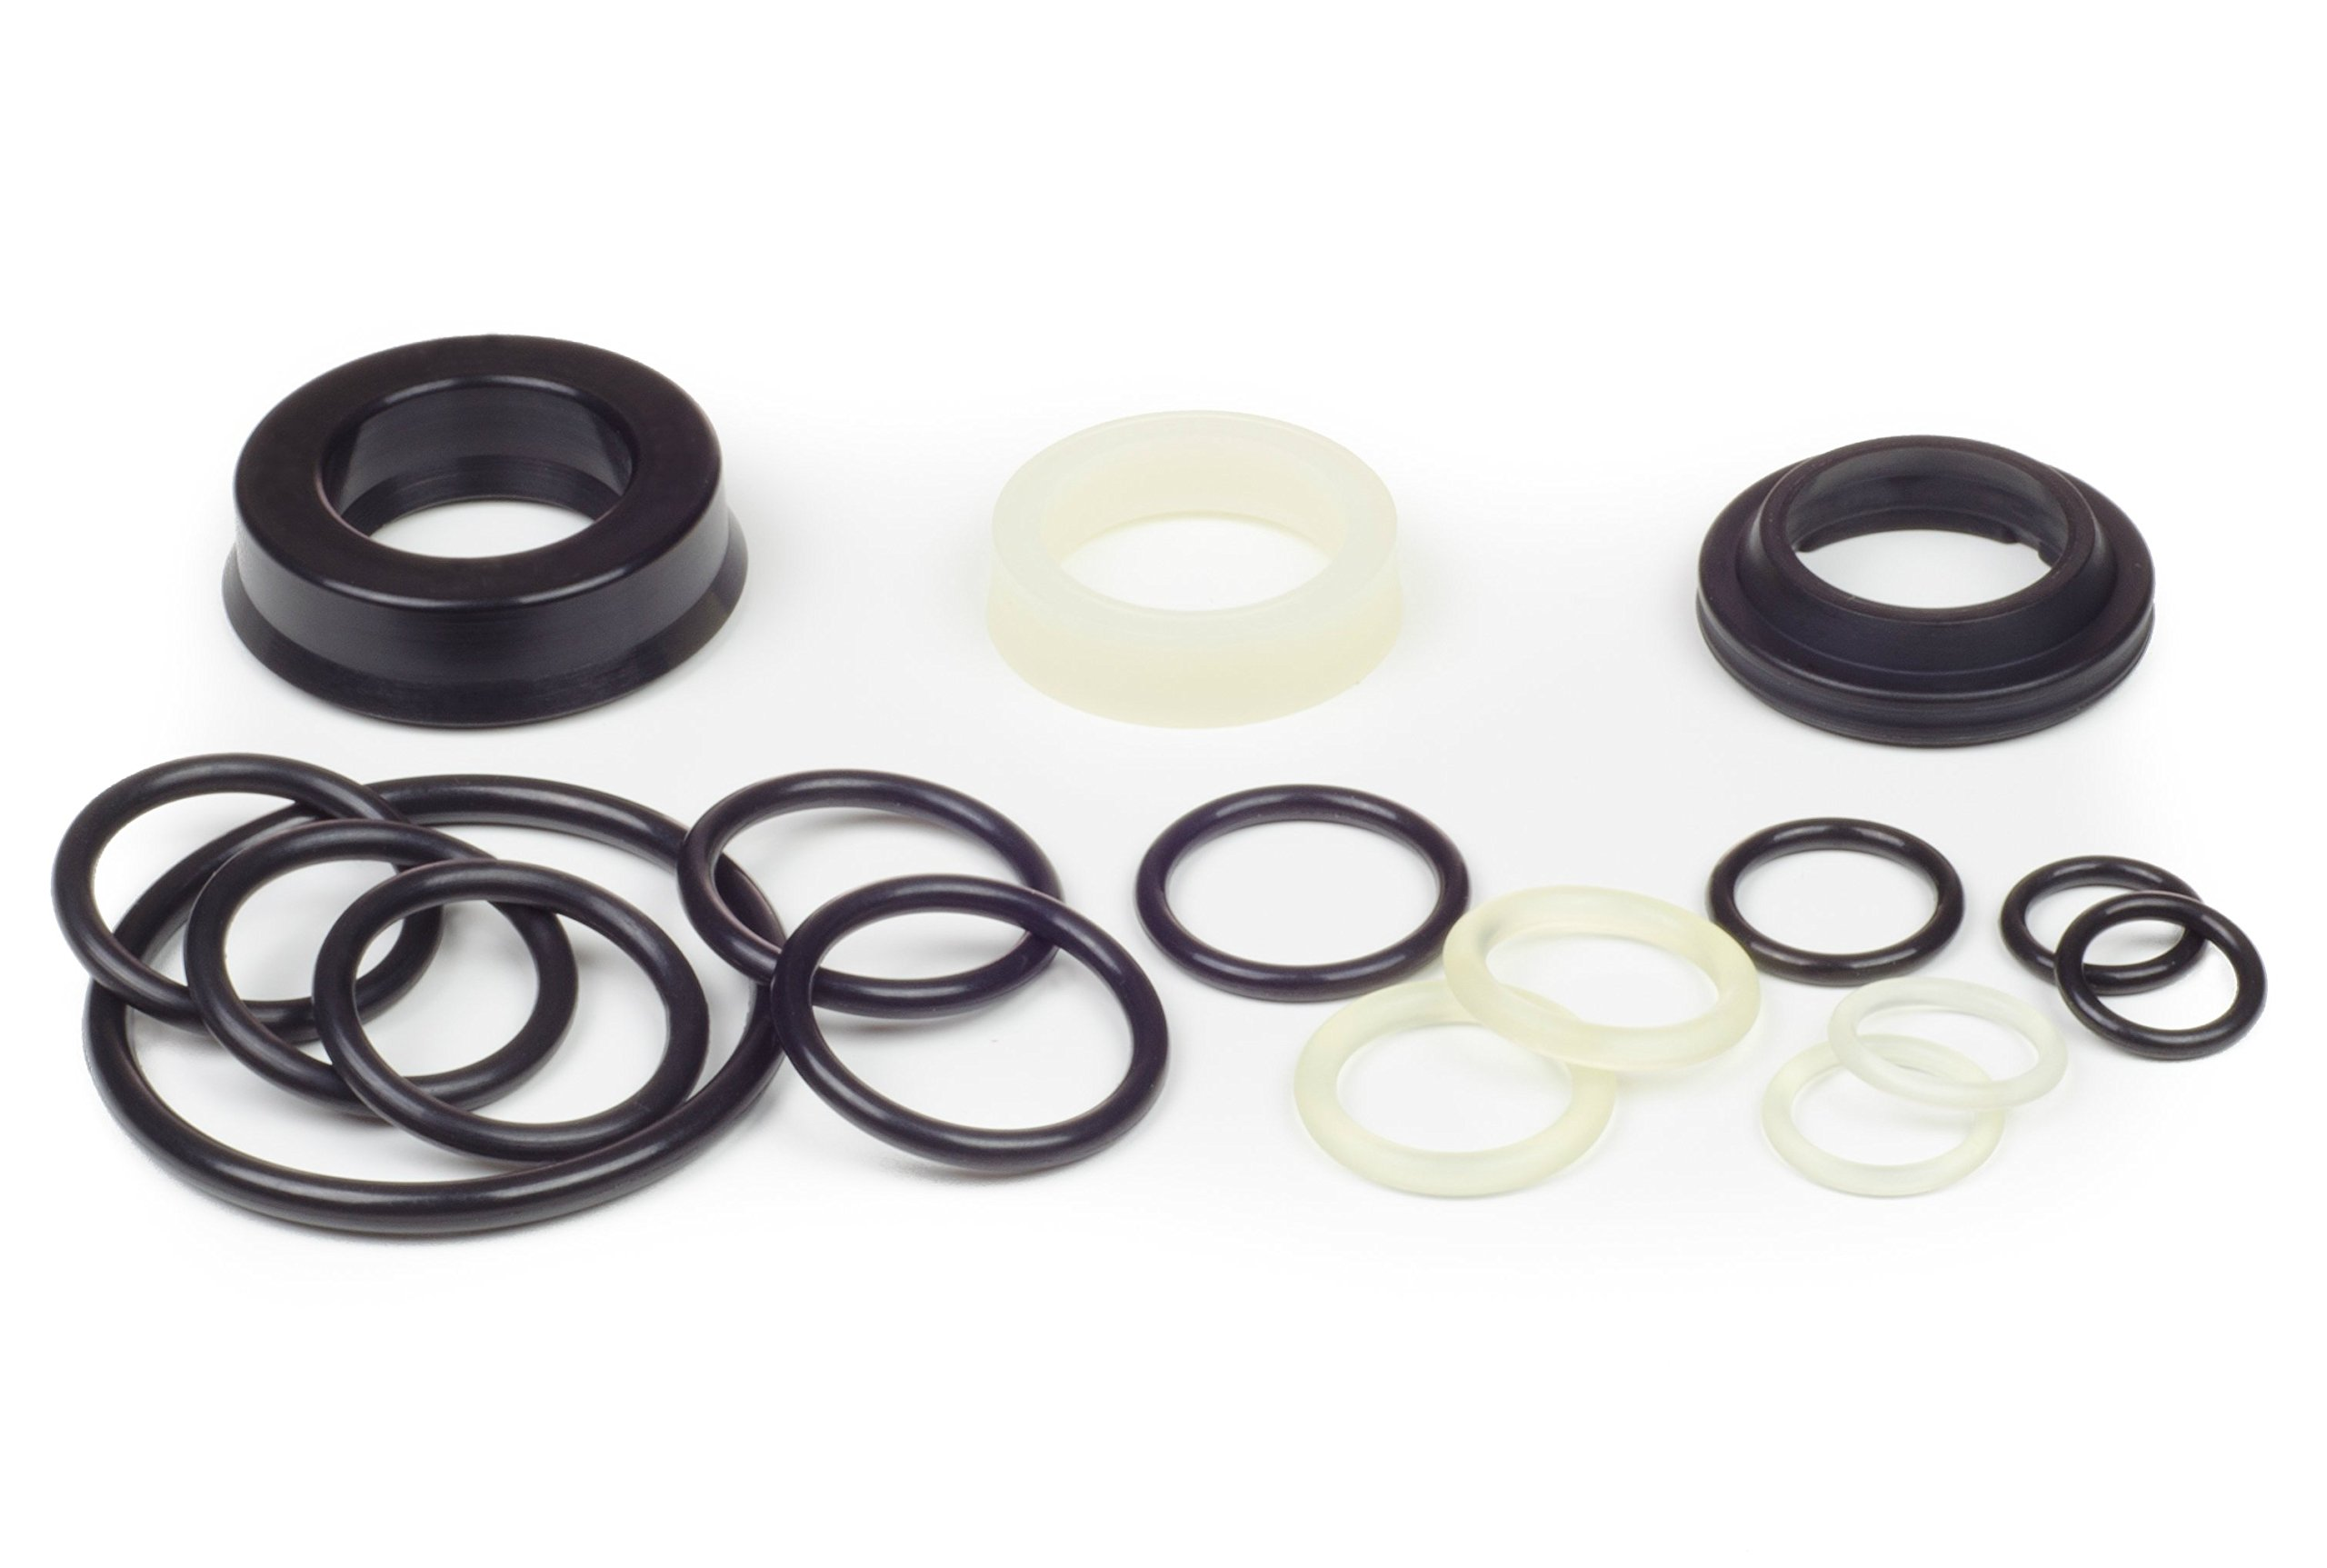 Greenlee 112875/40317 Aftermarket Pole Tamper Seal Packing Kit by Kit King USA, Used for H4802, H4802-1, H4802-6